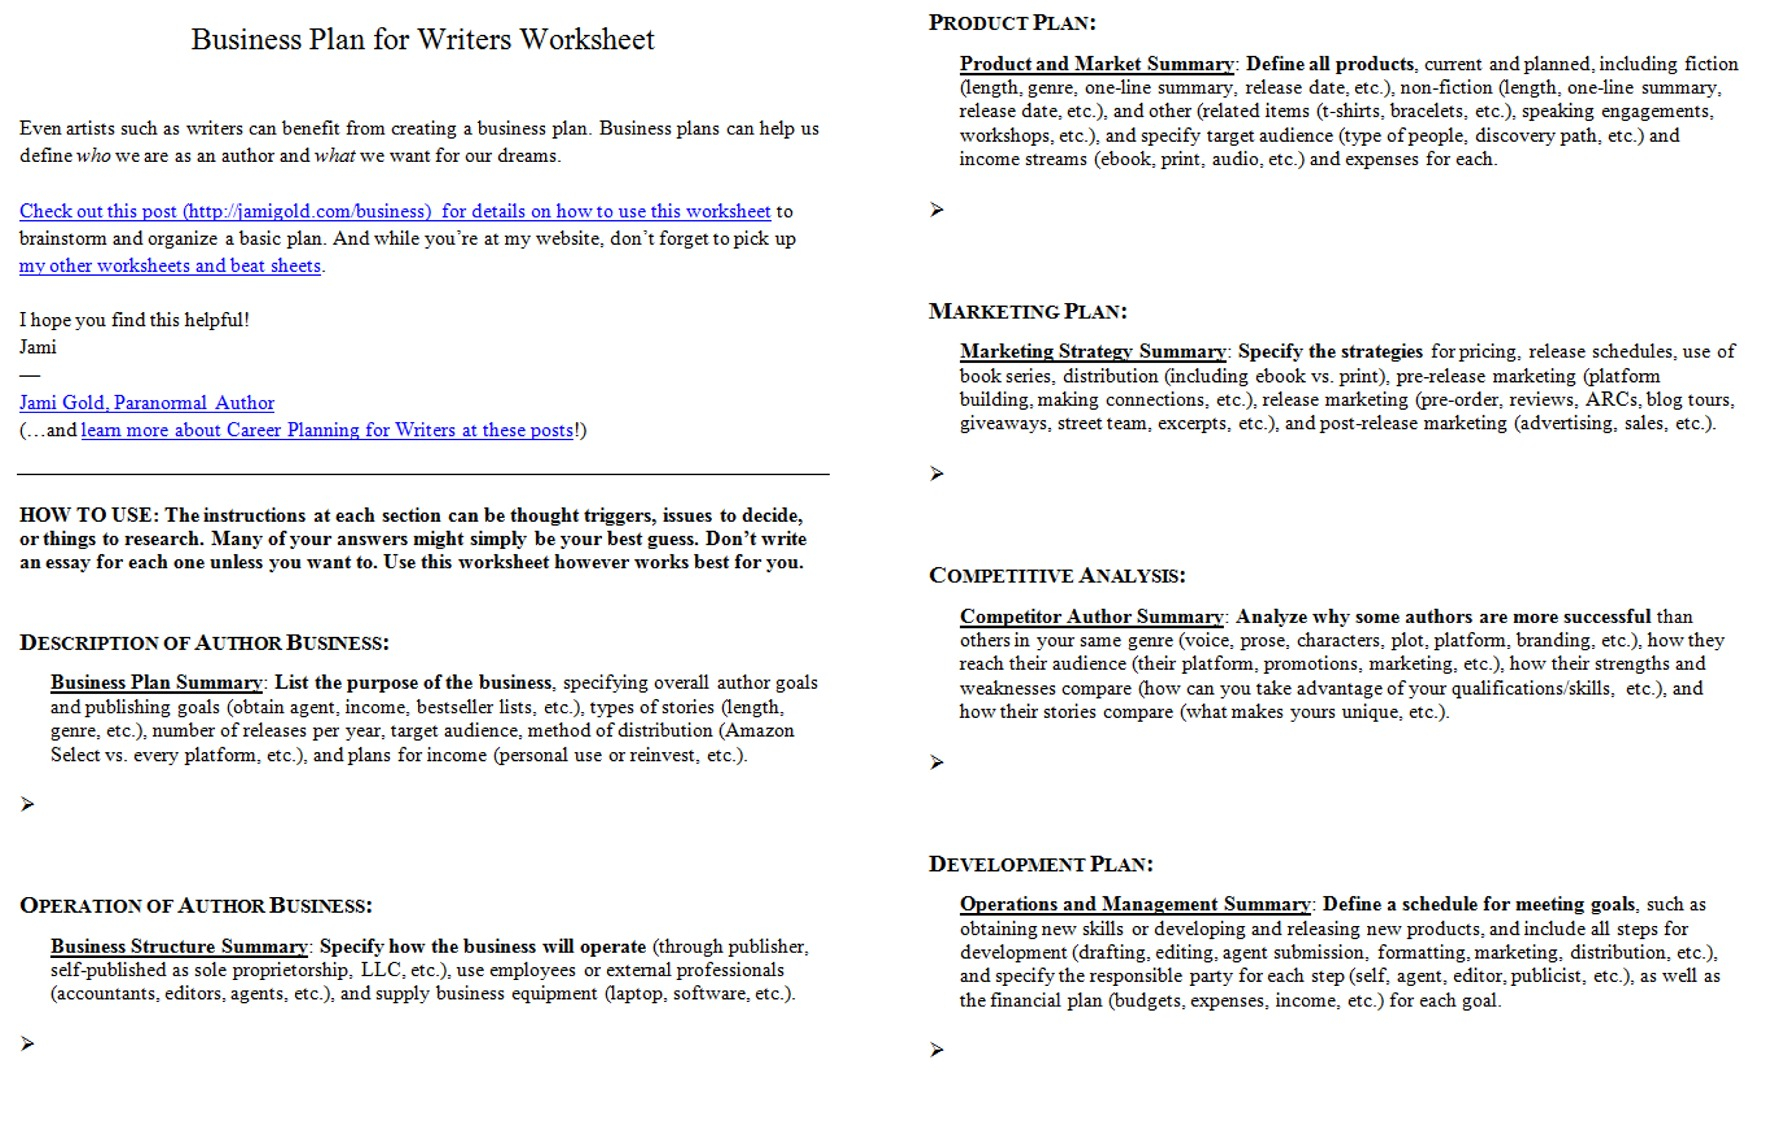 Proatmealus  Winning Worksheets For Writers  Jami Gold Paranormal Author With Inspiring Screen Shot Of Both Pages Of The Business Plan For Writers Worksheet With Appealing Science For Preschoolers Worksheets Also Brass Instruments Worksheet In Addition Alphabet Recognition Worksheets For Preschool And Worksheets Shapes As Well As Fractions Worksheets For Kindergarten Additionally Past Tense Worksheets For Kids From Jamigoldcom With Proatmealus  Inspiring Worksheets For Writers  Jami Gold Paranormal Author With Appealing Screen Shot Of Both Pages Of The Business Plan For Writers Worksheet And Winning Science For Preschoolers Worksheets Also Brass Instruments Worksheet In Addition Alphabet Recognition Worksheets For Preschool From Jamigoldcom